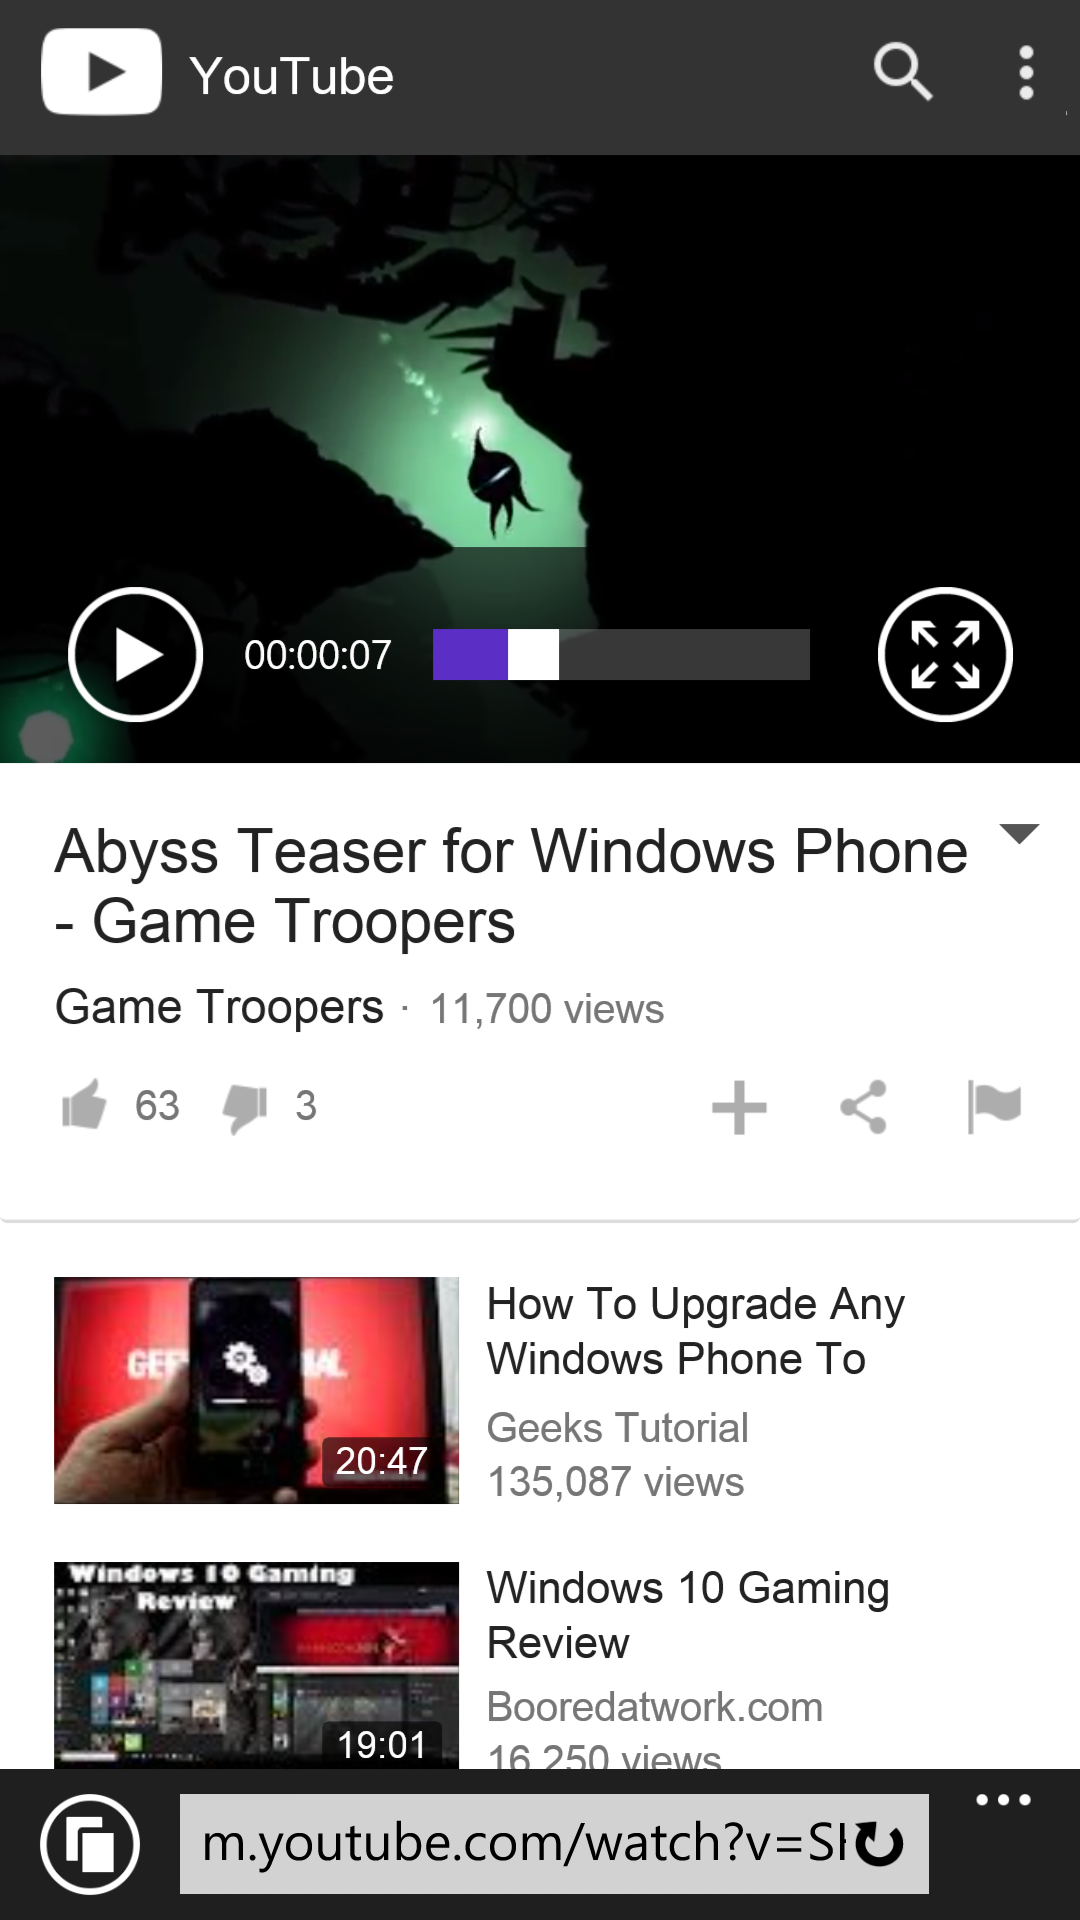 Youtubes updated mobile site works very well on windows phone gallery youtube mobile screen shots ccuart Image collections